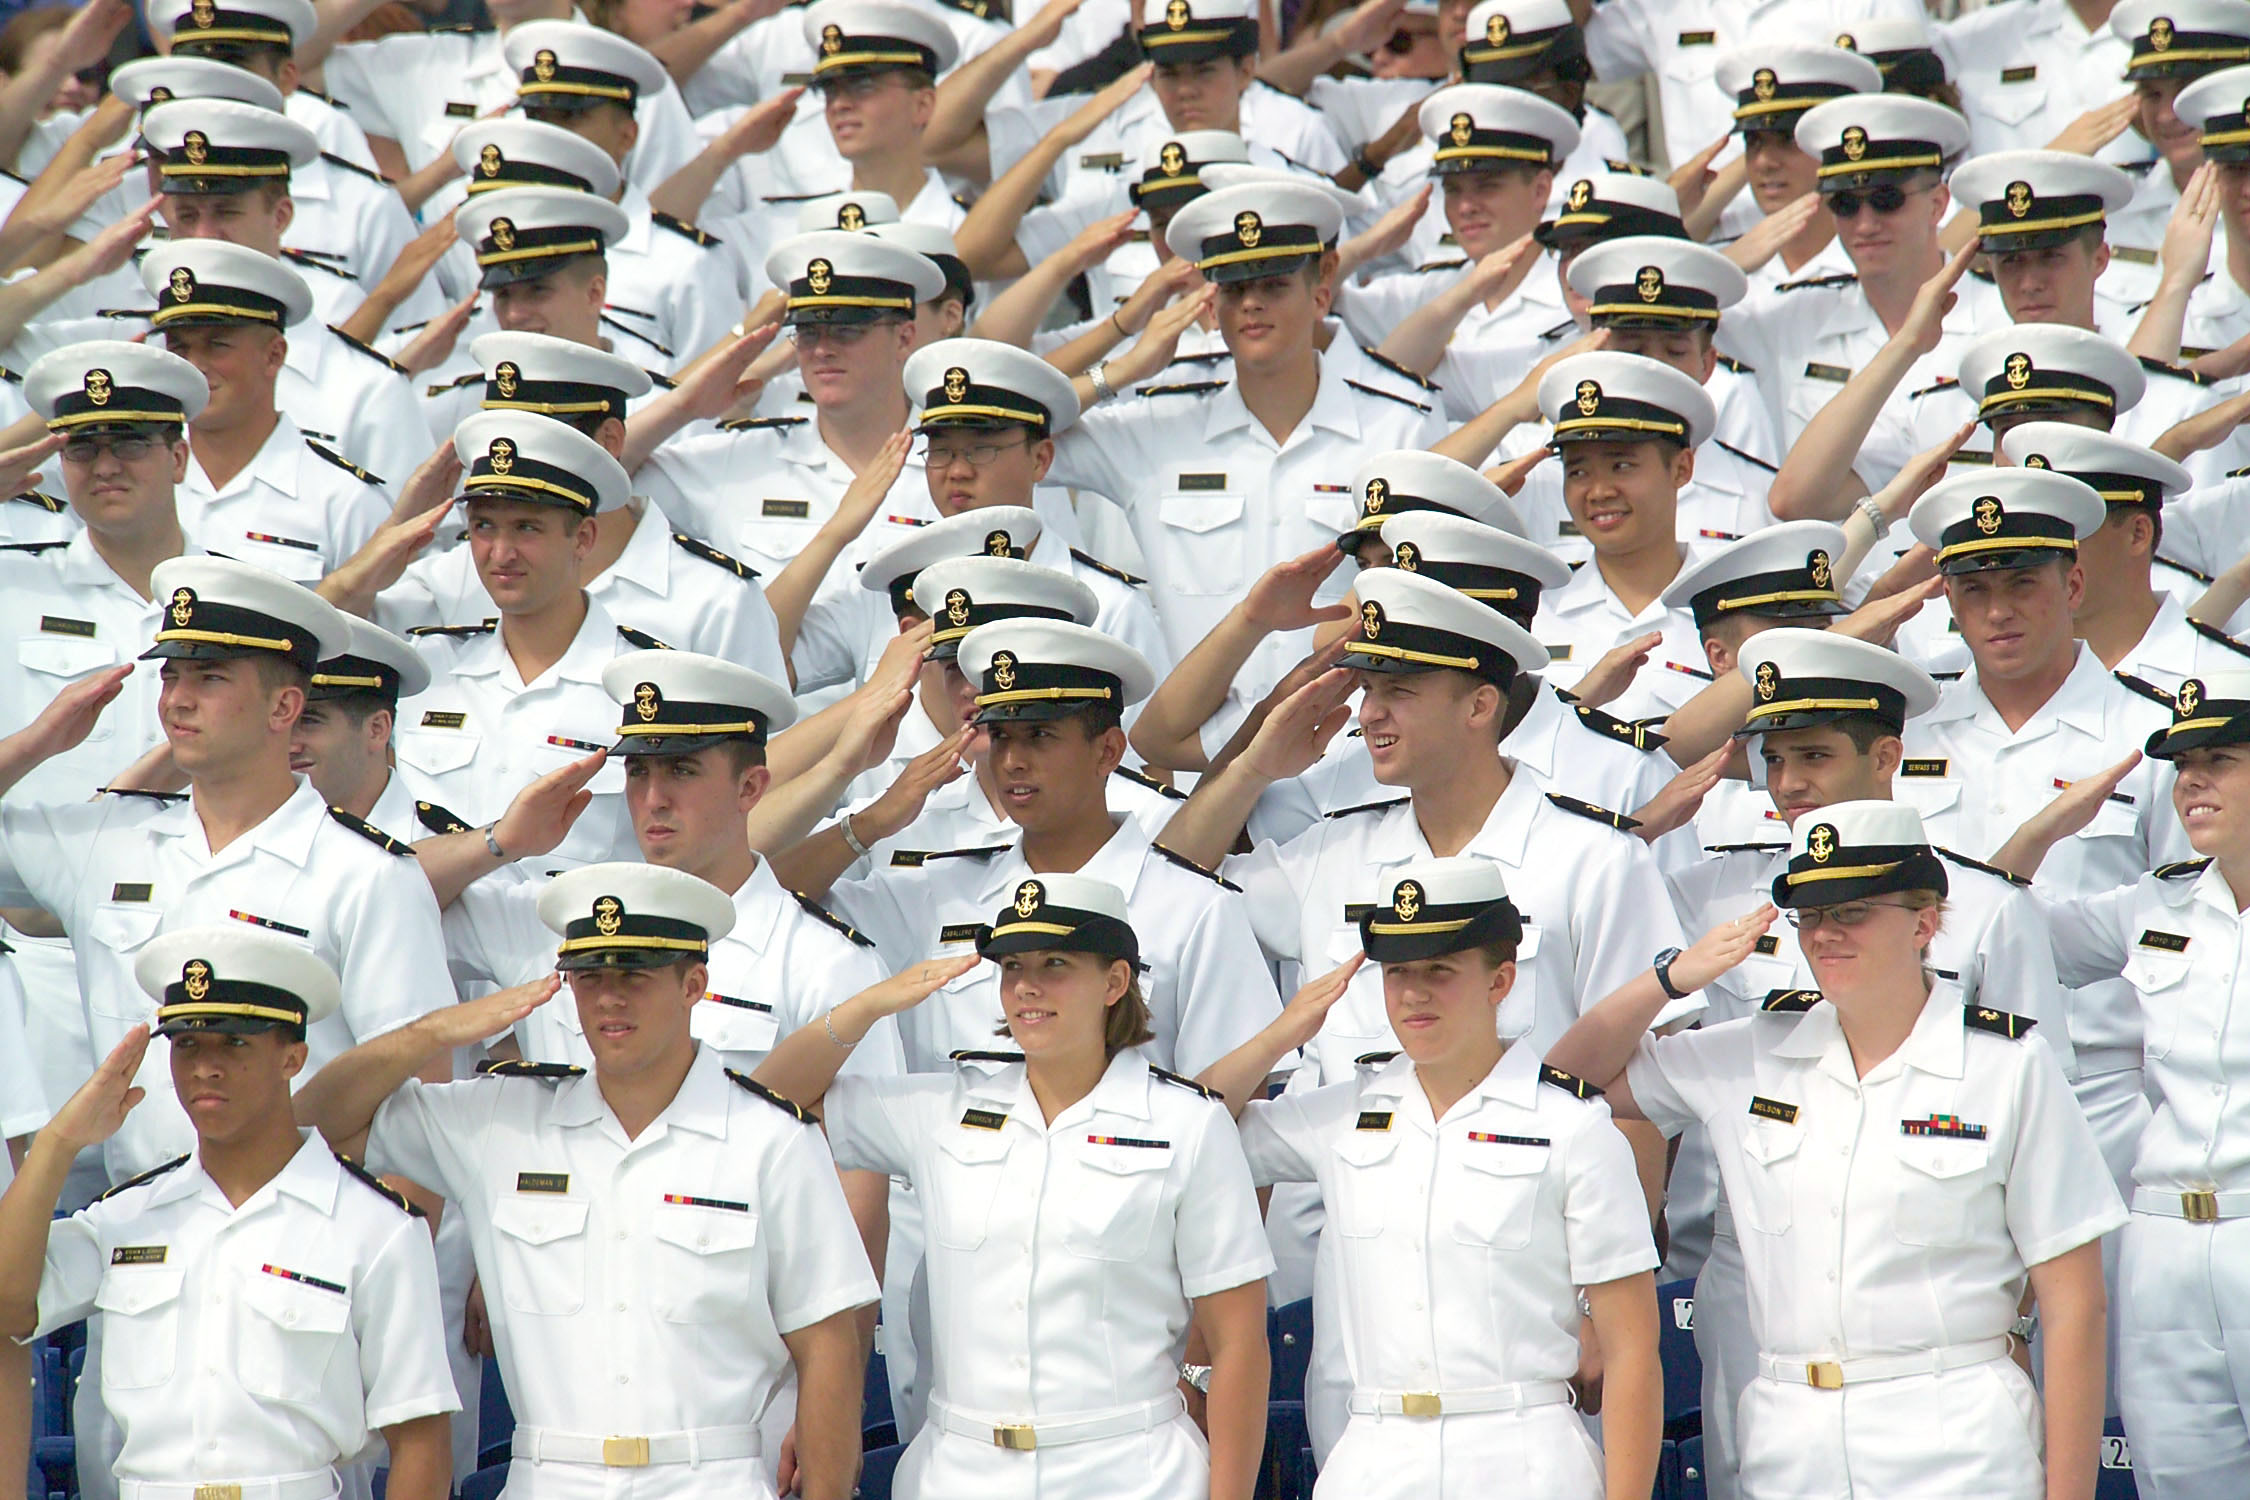 File:US Navy 040528-N-2383B-006 Midshipmen stand and salute the colors